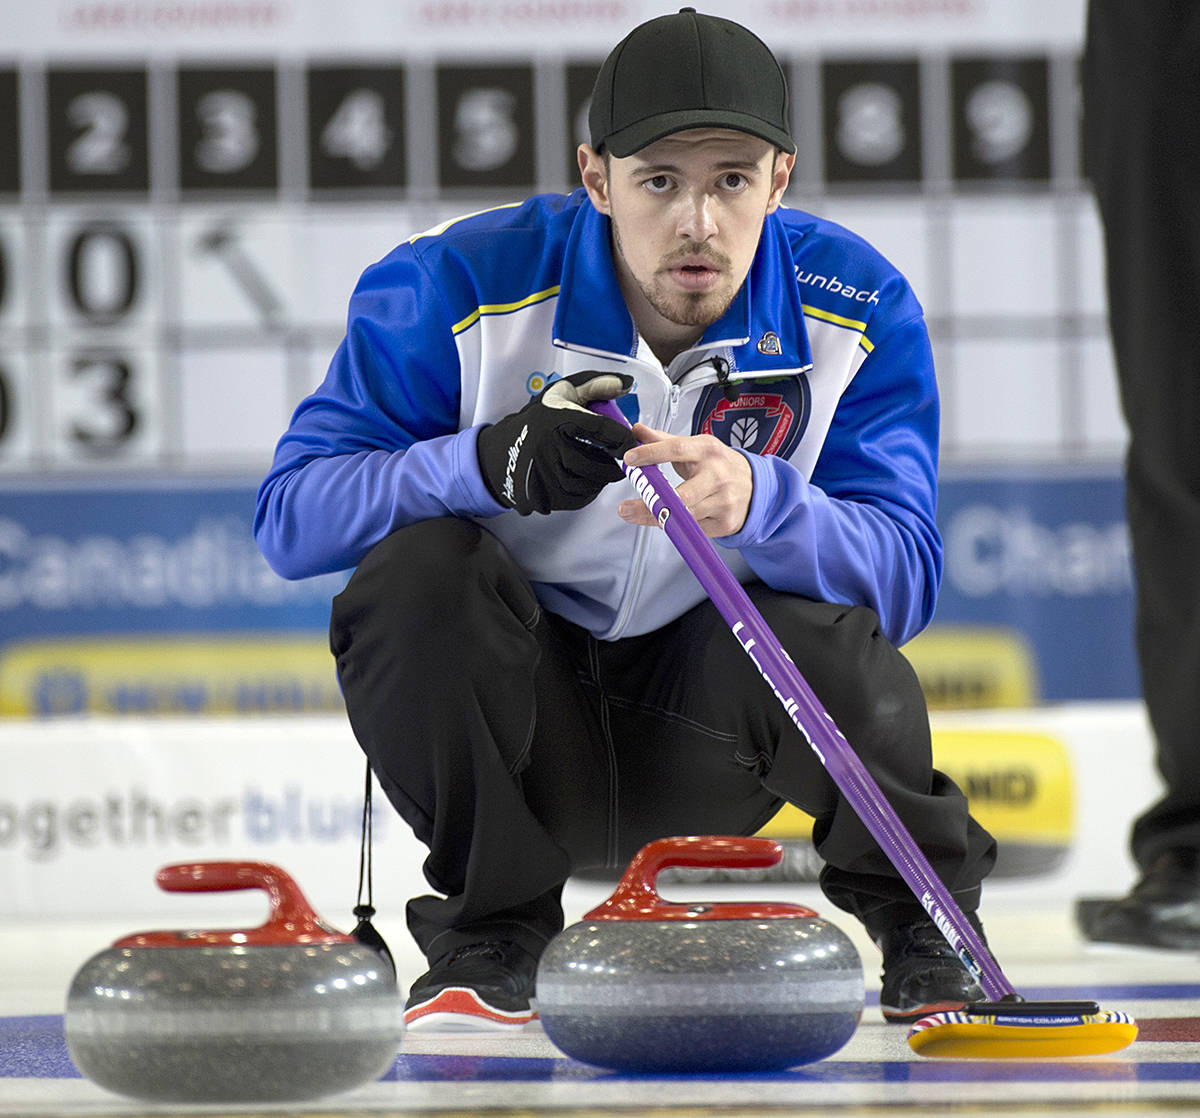 Team BC's skip Tyler Tardi surveys the house, and directs a shot by one of his squad during the gold medal finals today (Sunday) at the New Holland Canadian Junior Curling Championships. (Michael Burns/Curling Canada)